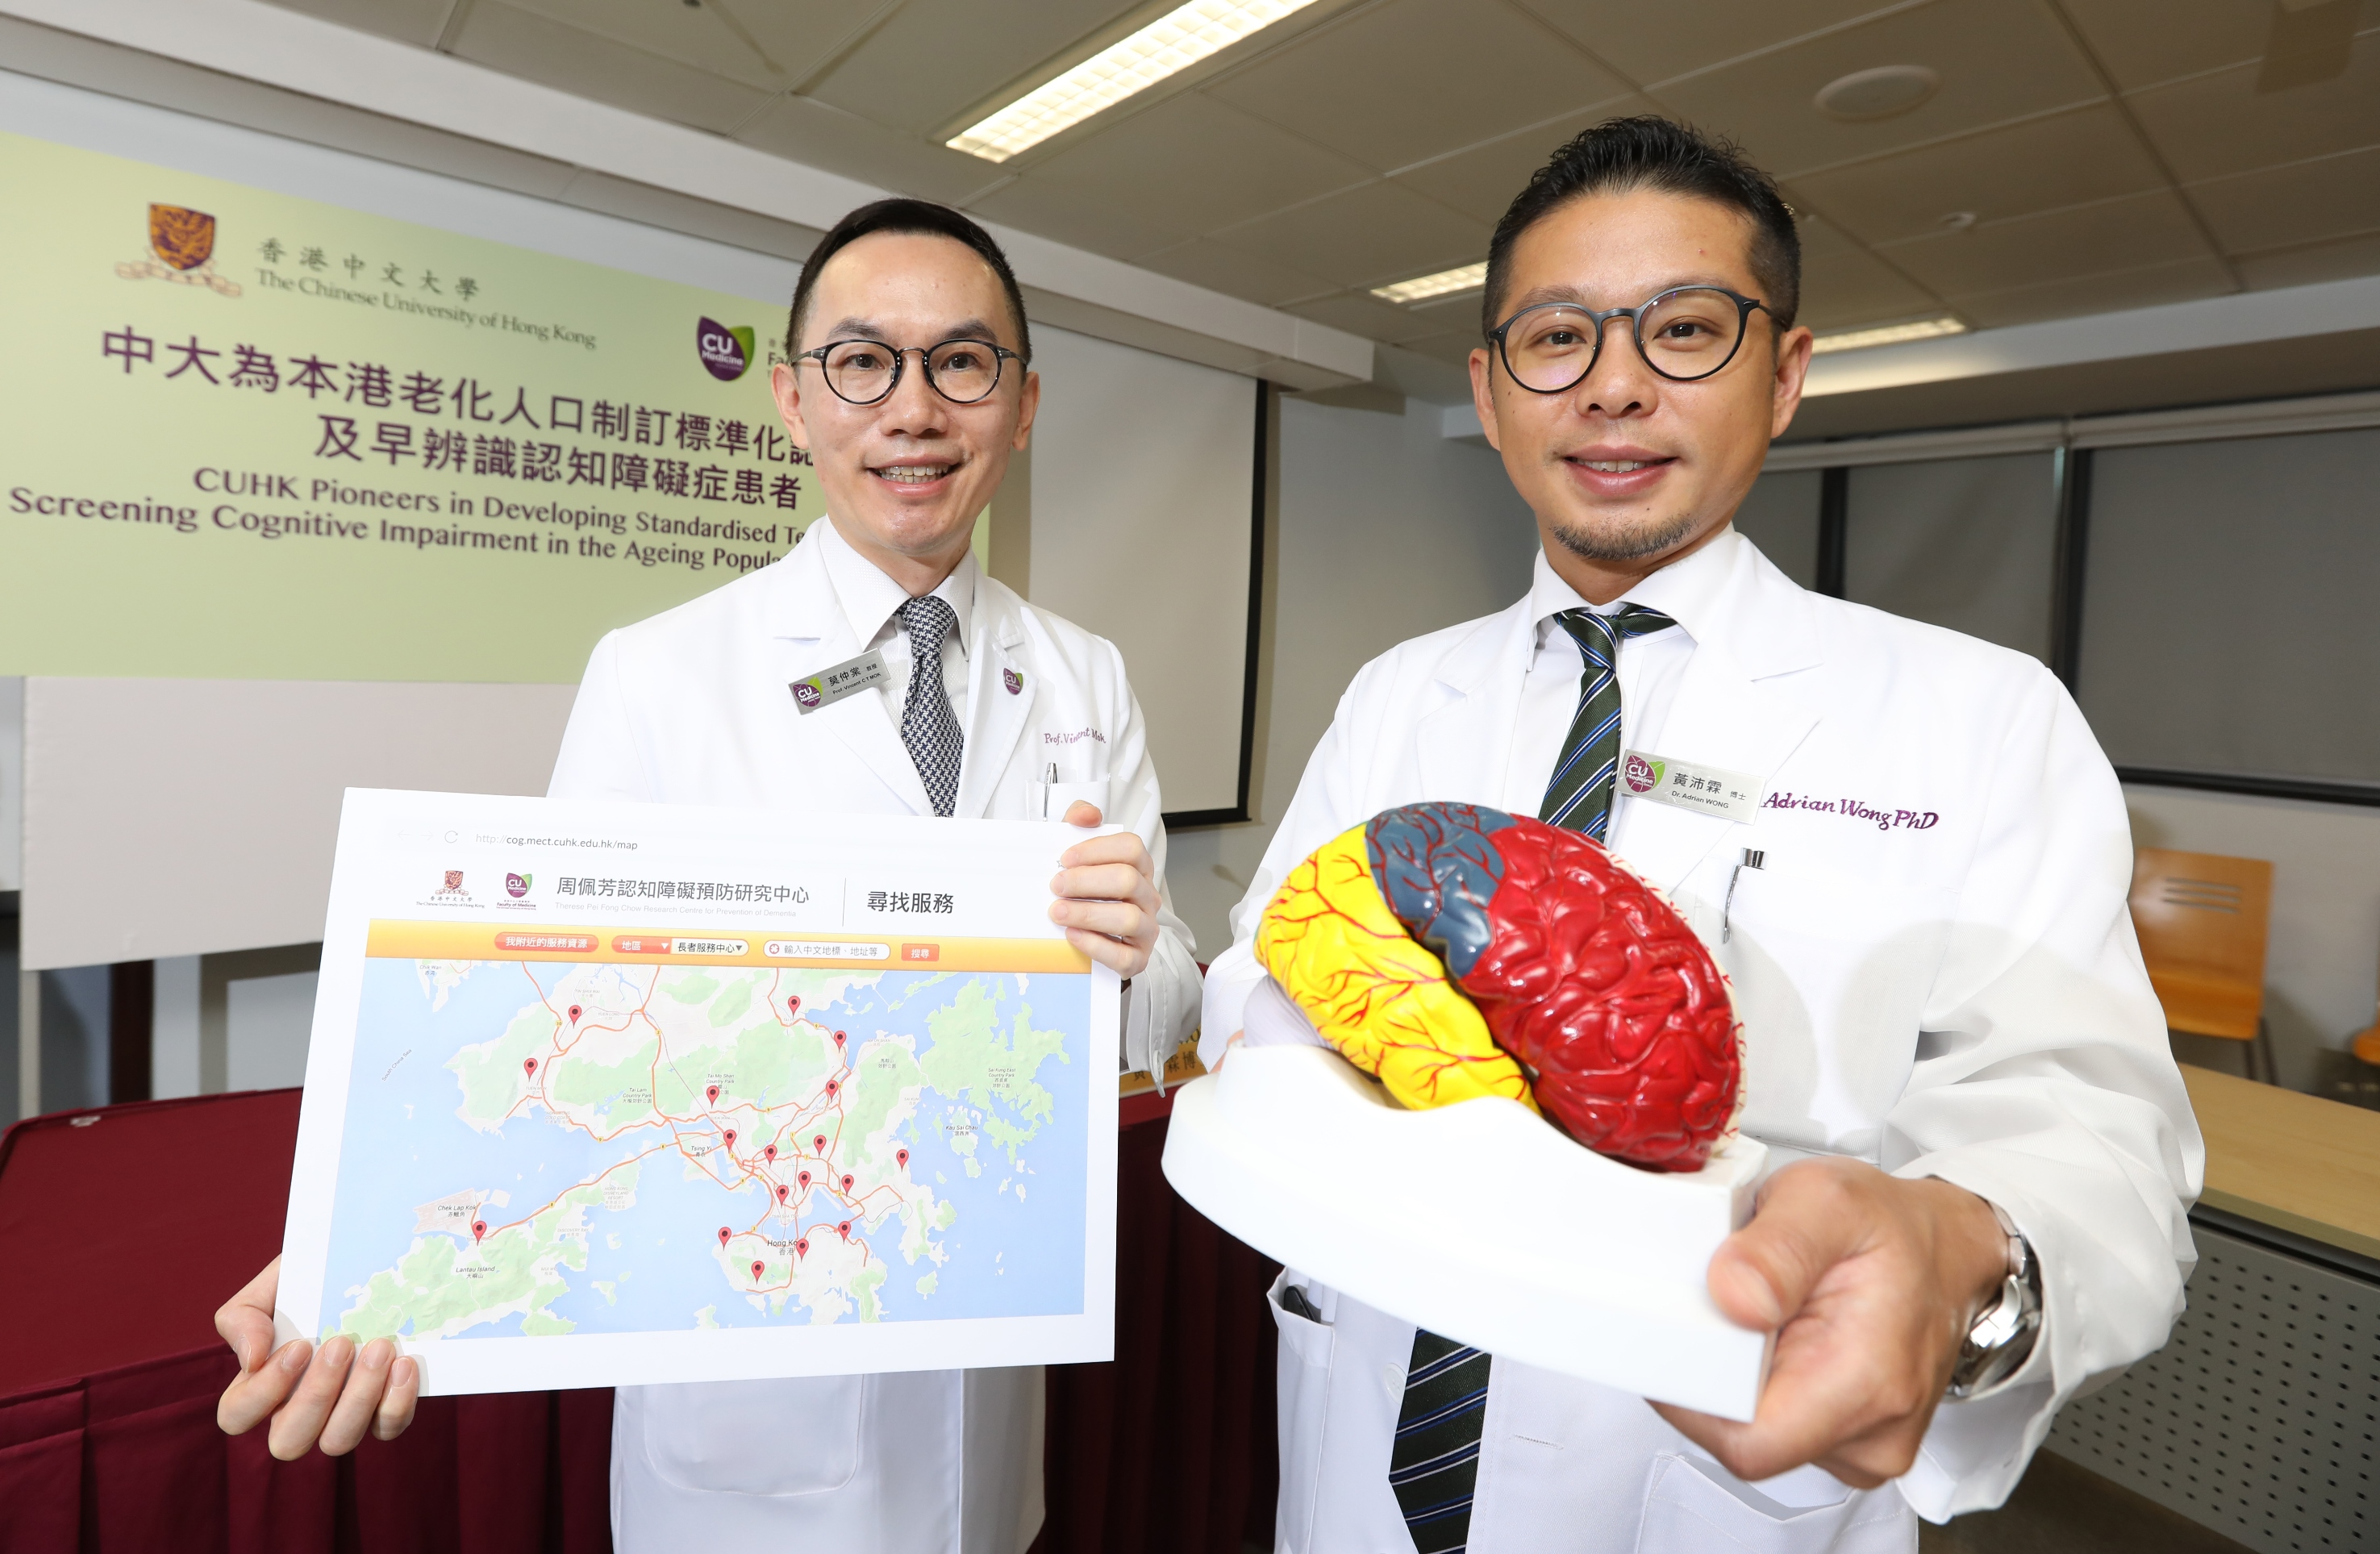 "The Faculty of Medicine at CUHK developed and validated two standardised tests for early detection of people suffering from dementia. The two tests are ""Montreal Cognitive Assessment Hong Kong Version (HK-MoCA)"" and ""Montreal Cognitive Assessment 5-Minute Protocol Hong Kong Version (HK-MoCA 5-Min Protocol)"". (From left: Prof. Vincent Chung Tong MOK, Mok Hing Yiu Professor of Medicine and Head of Division of Neurology, Department of Medicine & Therapeutics, Faculty of Medicine at CUHK and Dr. Adrian WONG, Research Assistant Professor and Clinical Psychologist of Division of Neurology, Department of Medicine and Therapeutics, Faculty of Medicine at CUHK)"